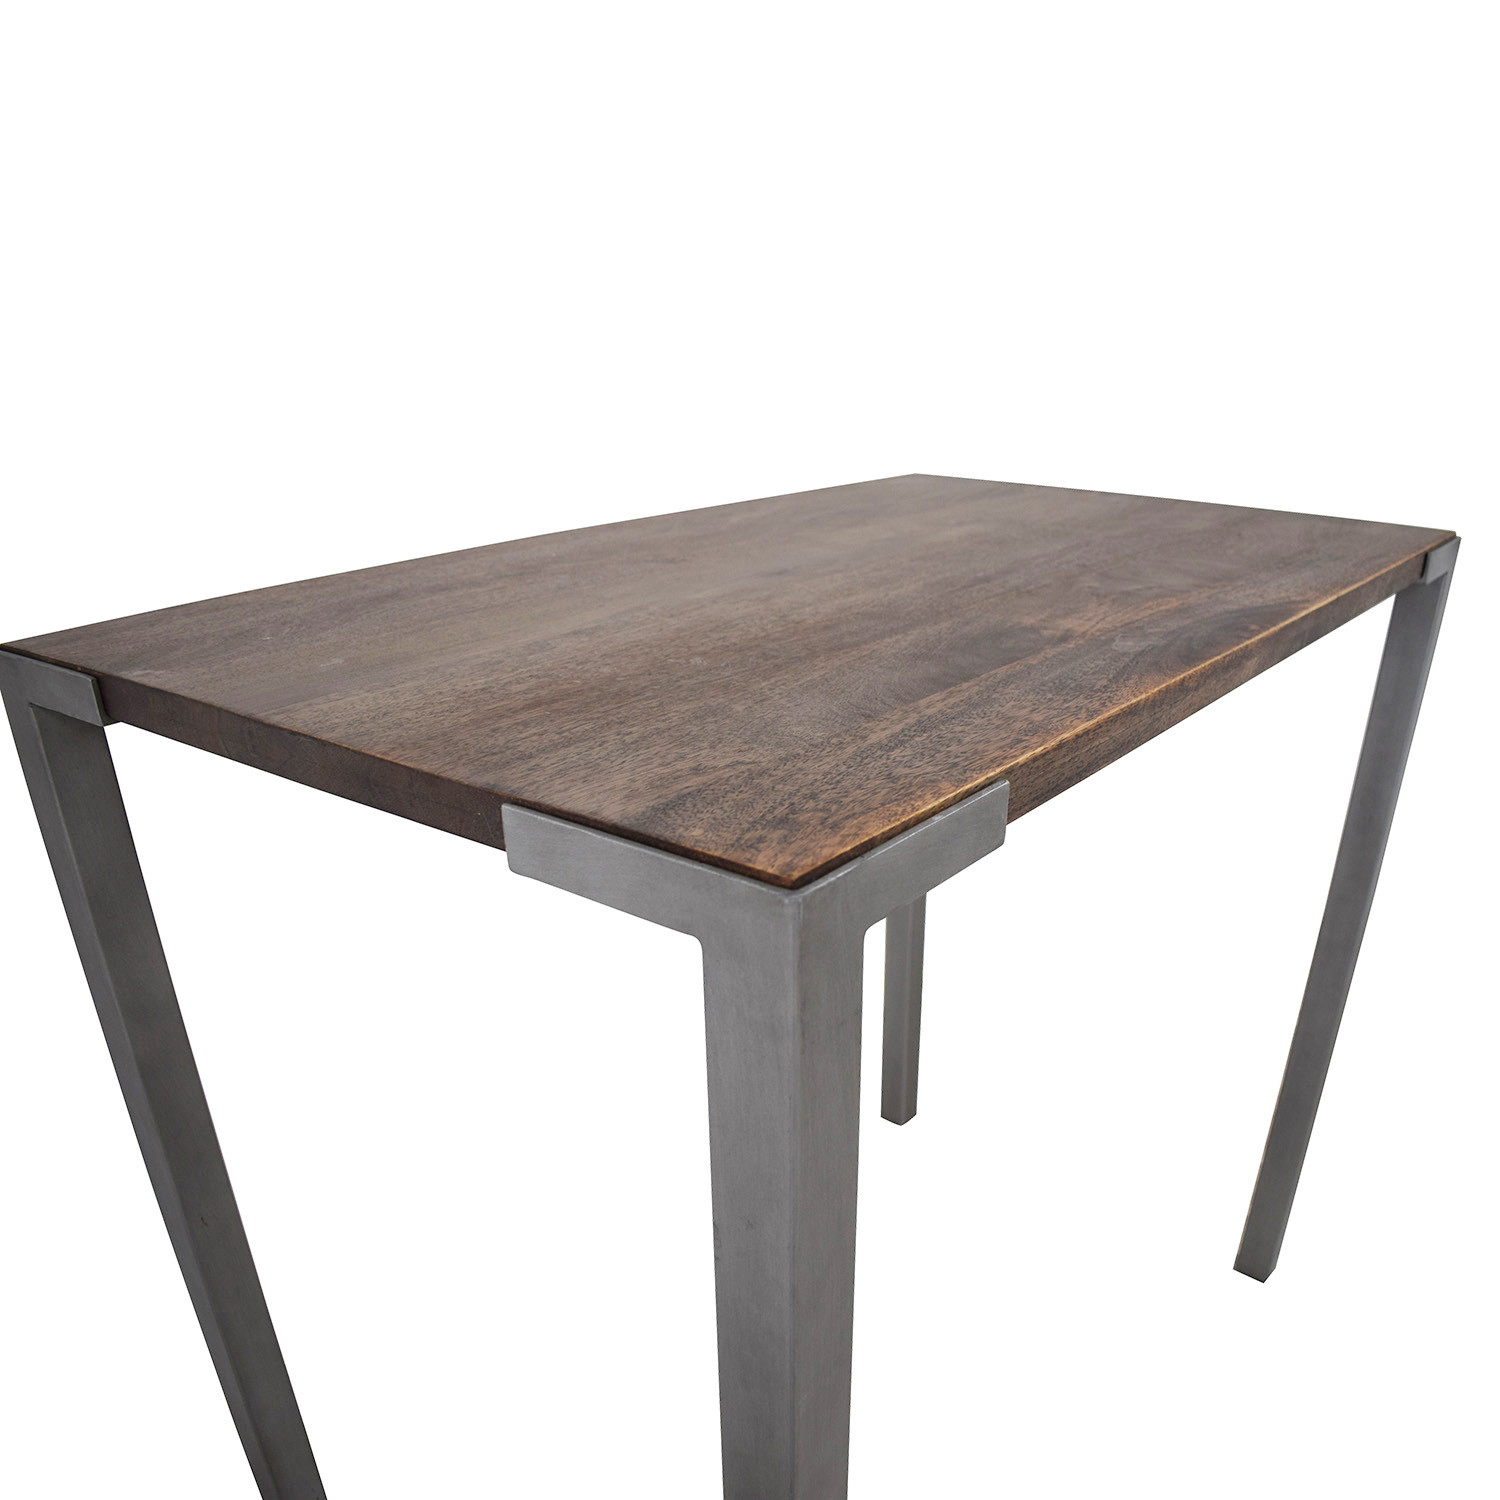 Best ideas about Cb2 Dining Table . Save or Pin OFF CB2 CB2 Rustic Wood Stilt High Dining Table Tables Now.